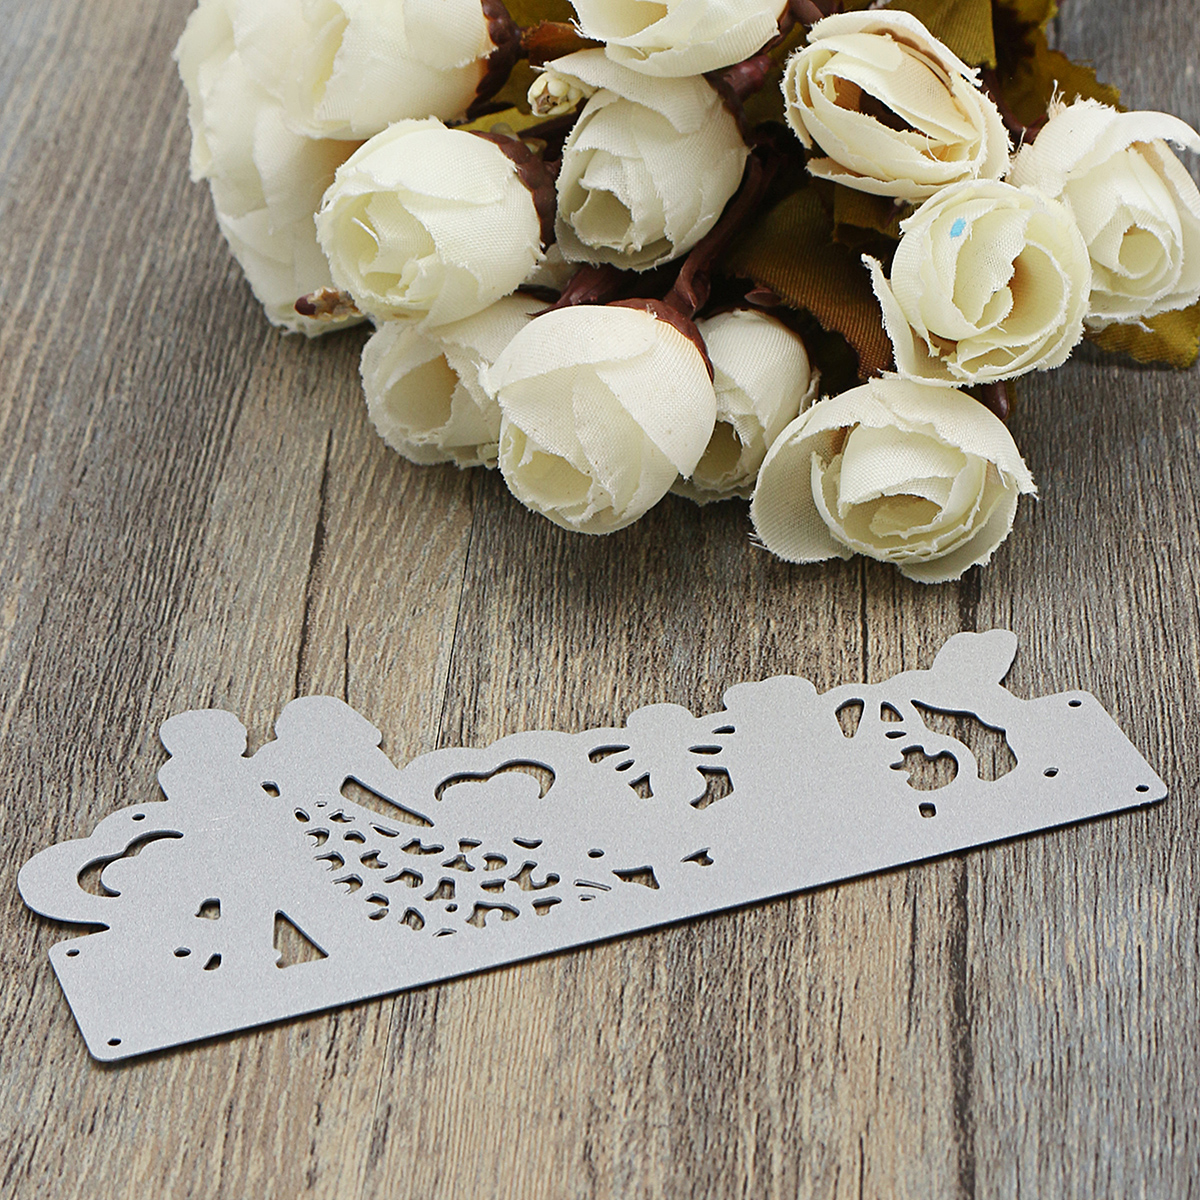 Lover Sweetheart Cutting Die Stencil for DIY Scrapbook Album Paper Card Gift